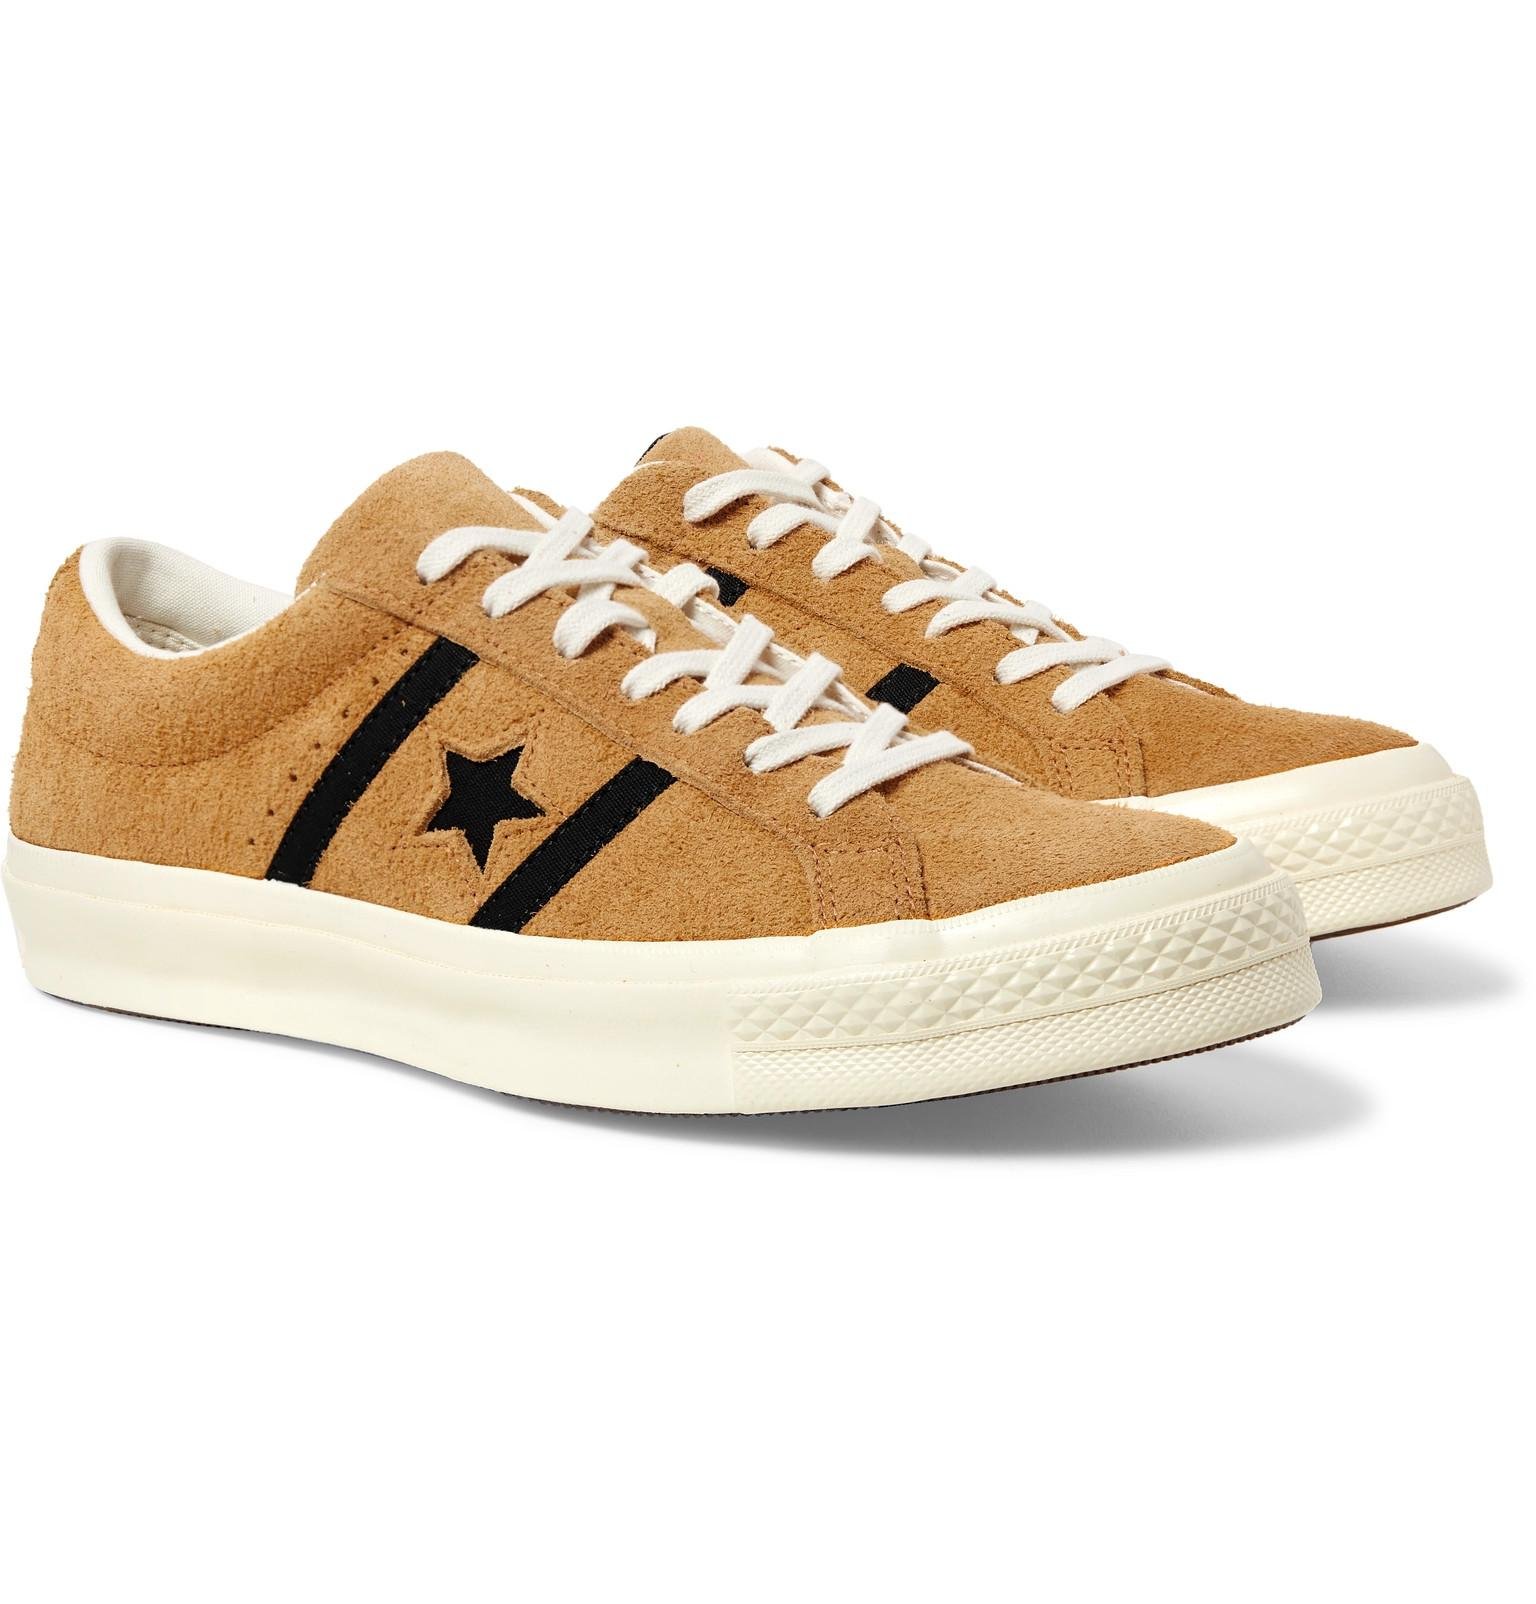 b556e7f11df0e Lyst - Converse One Star Academy Ox Suede Sneakers for Men